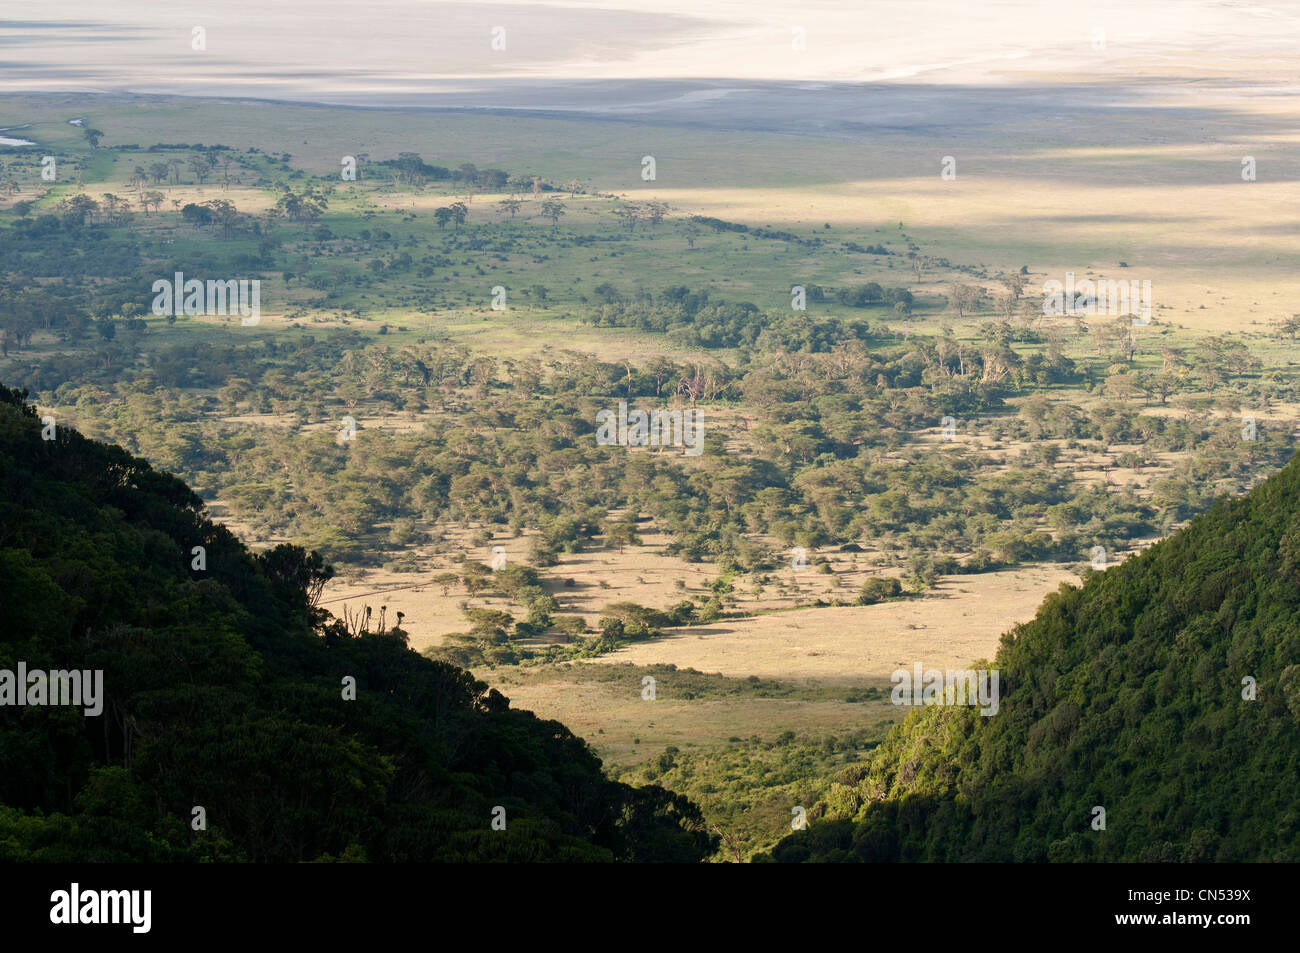 Tanzania, Arusha Region, Ngorongoro Conservation Area, listed as World Heritage by UNESCO, panoramic view over the - Stock Image